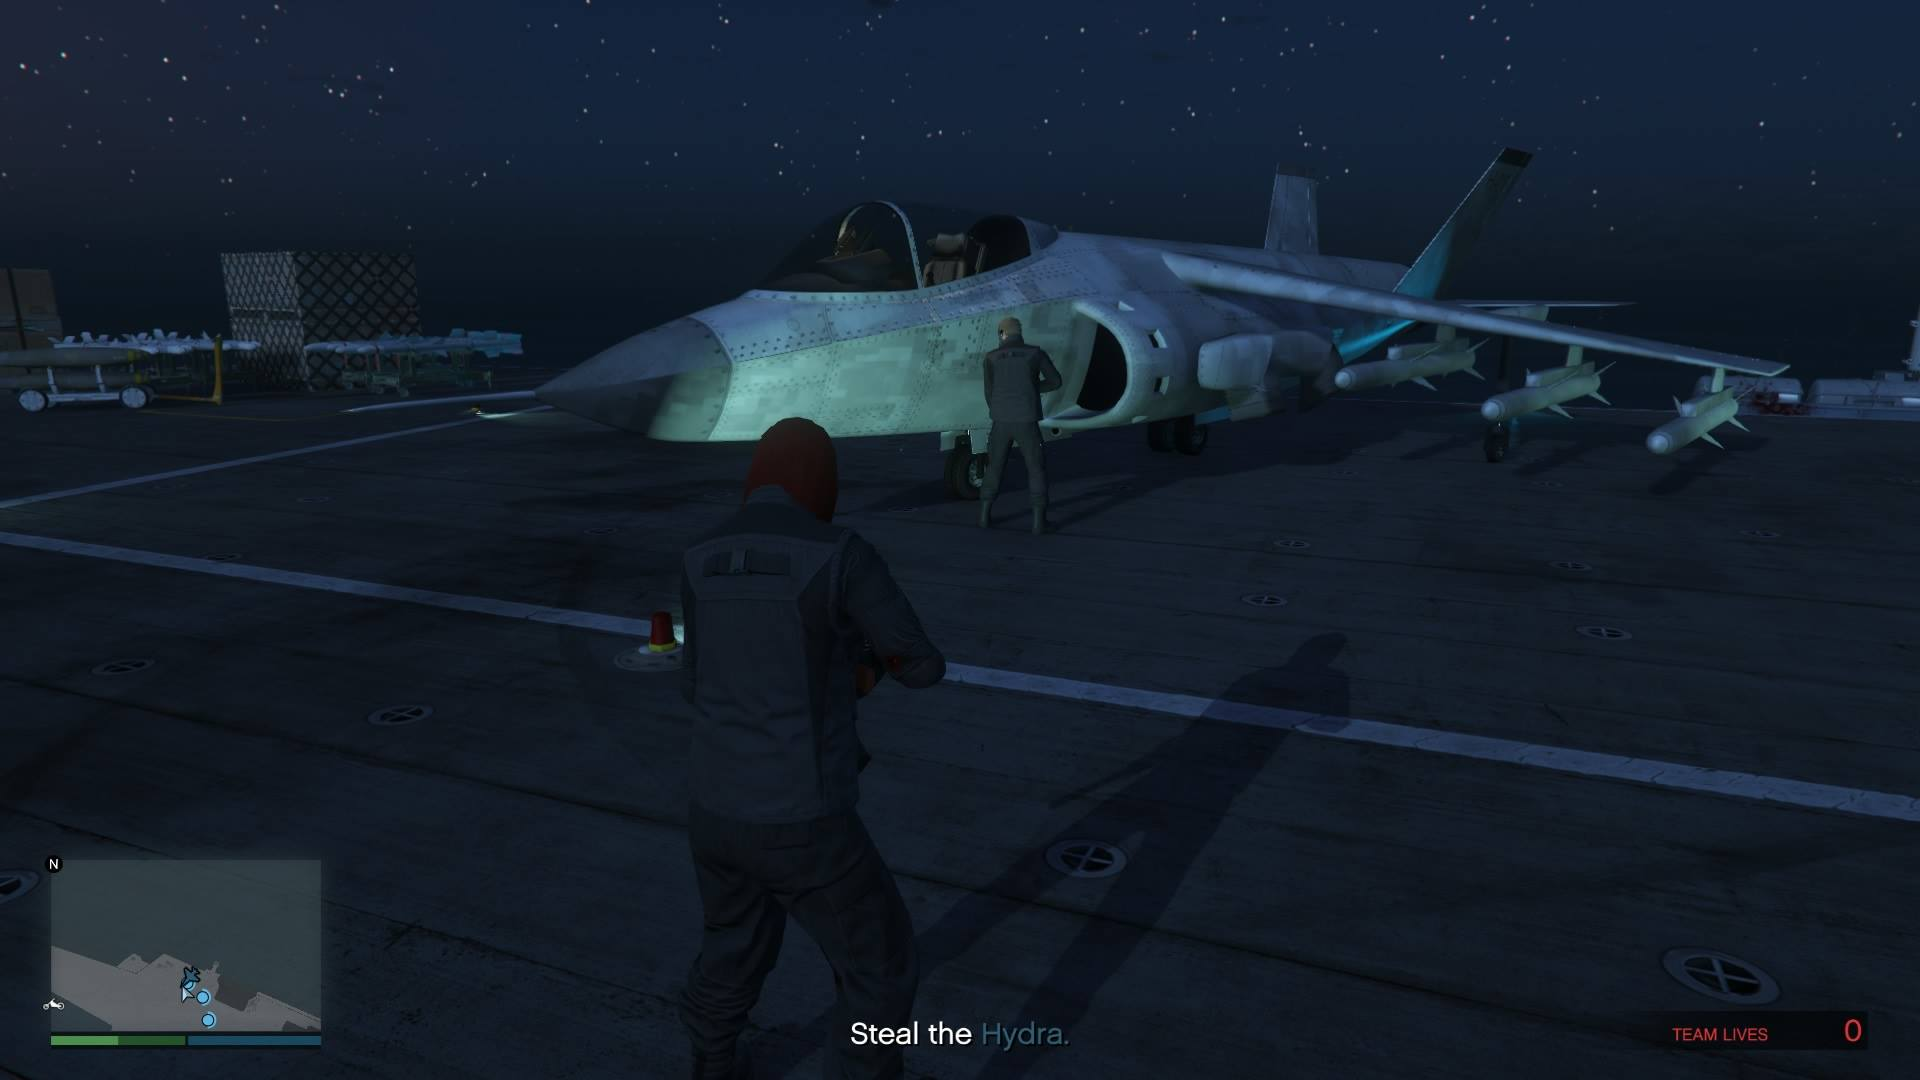 Gta 5 Online Heists Guide How To Get The Hydra And The Valkyrie Vg247